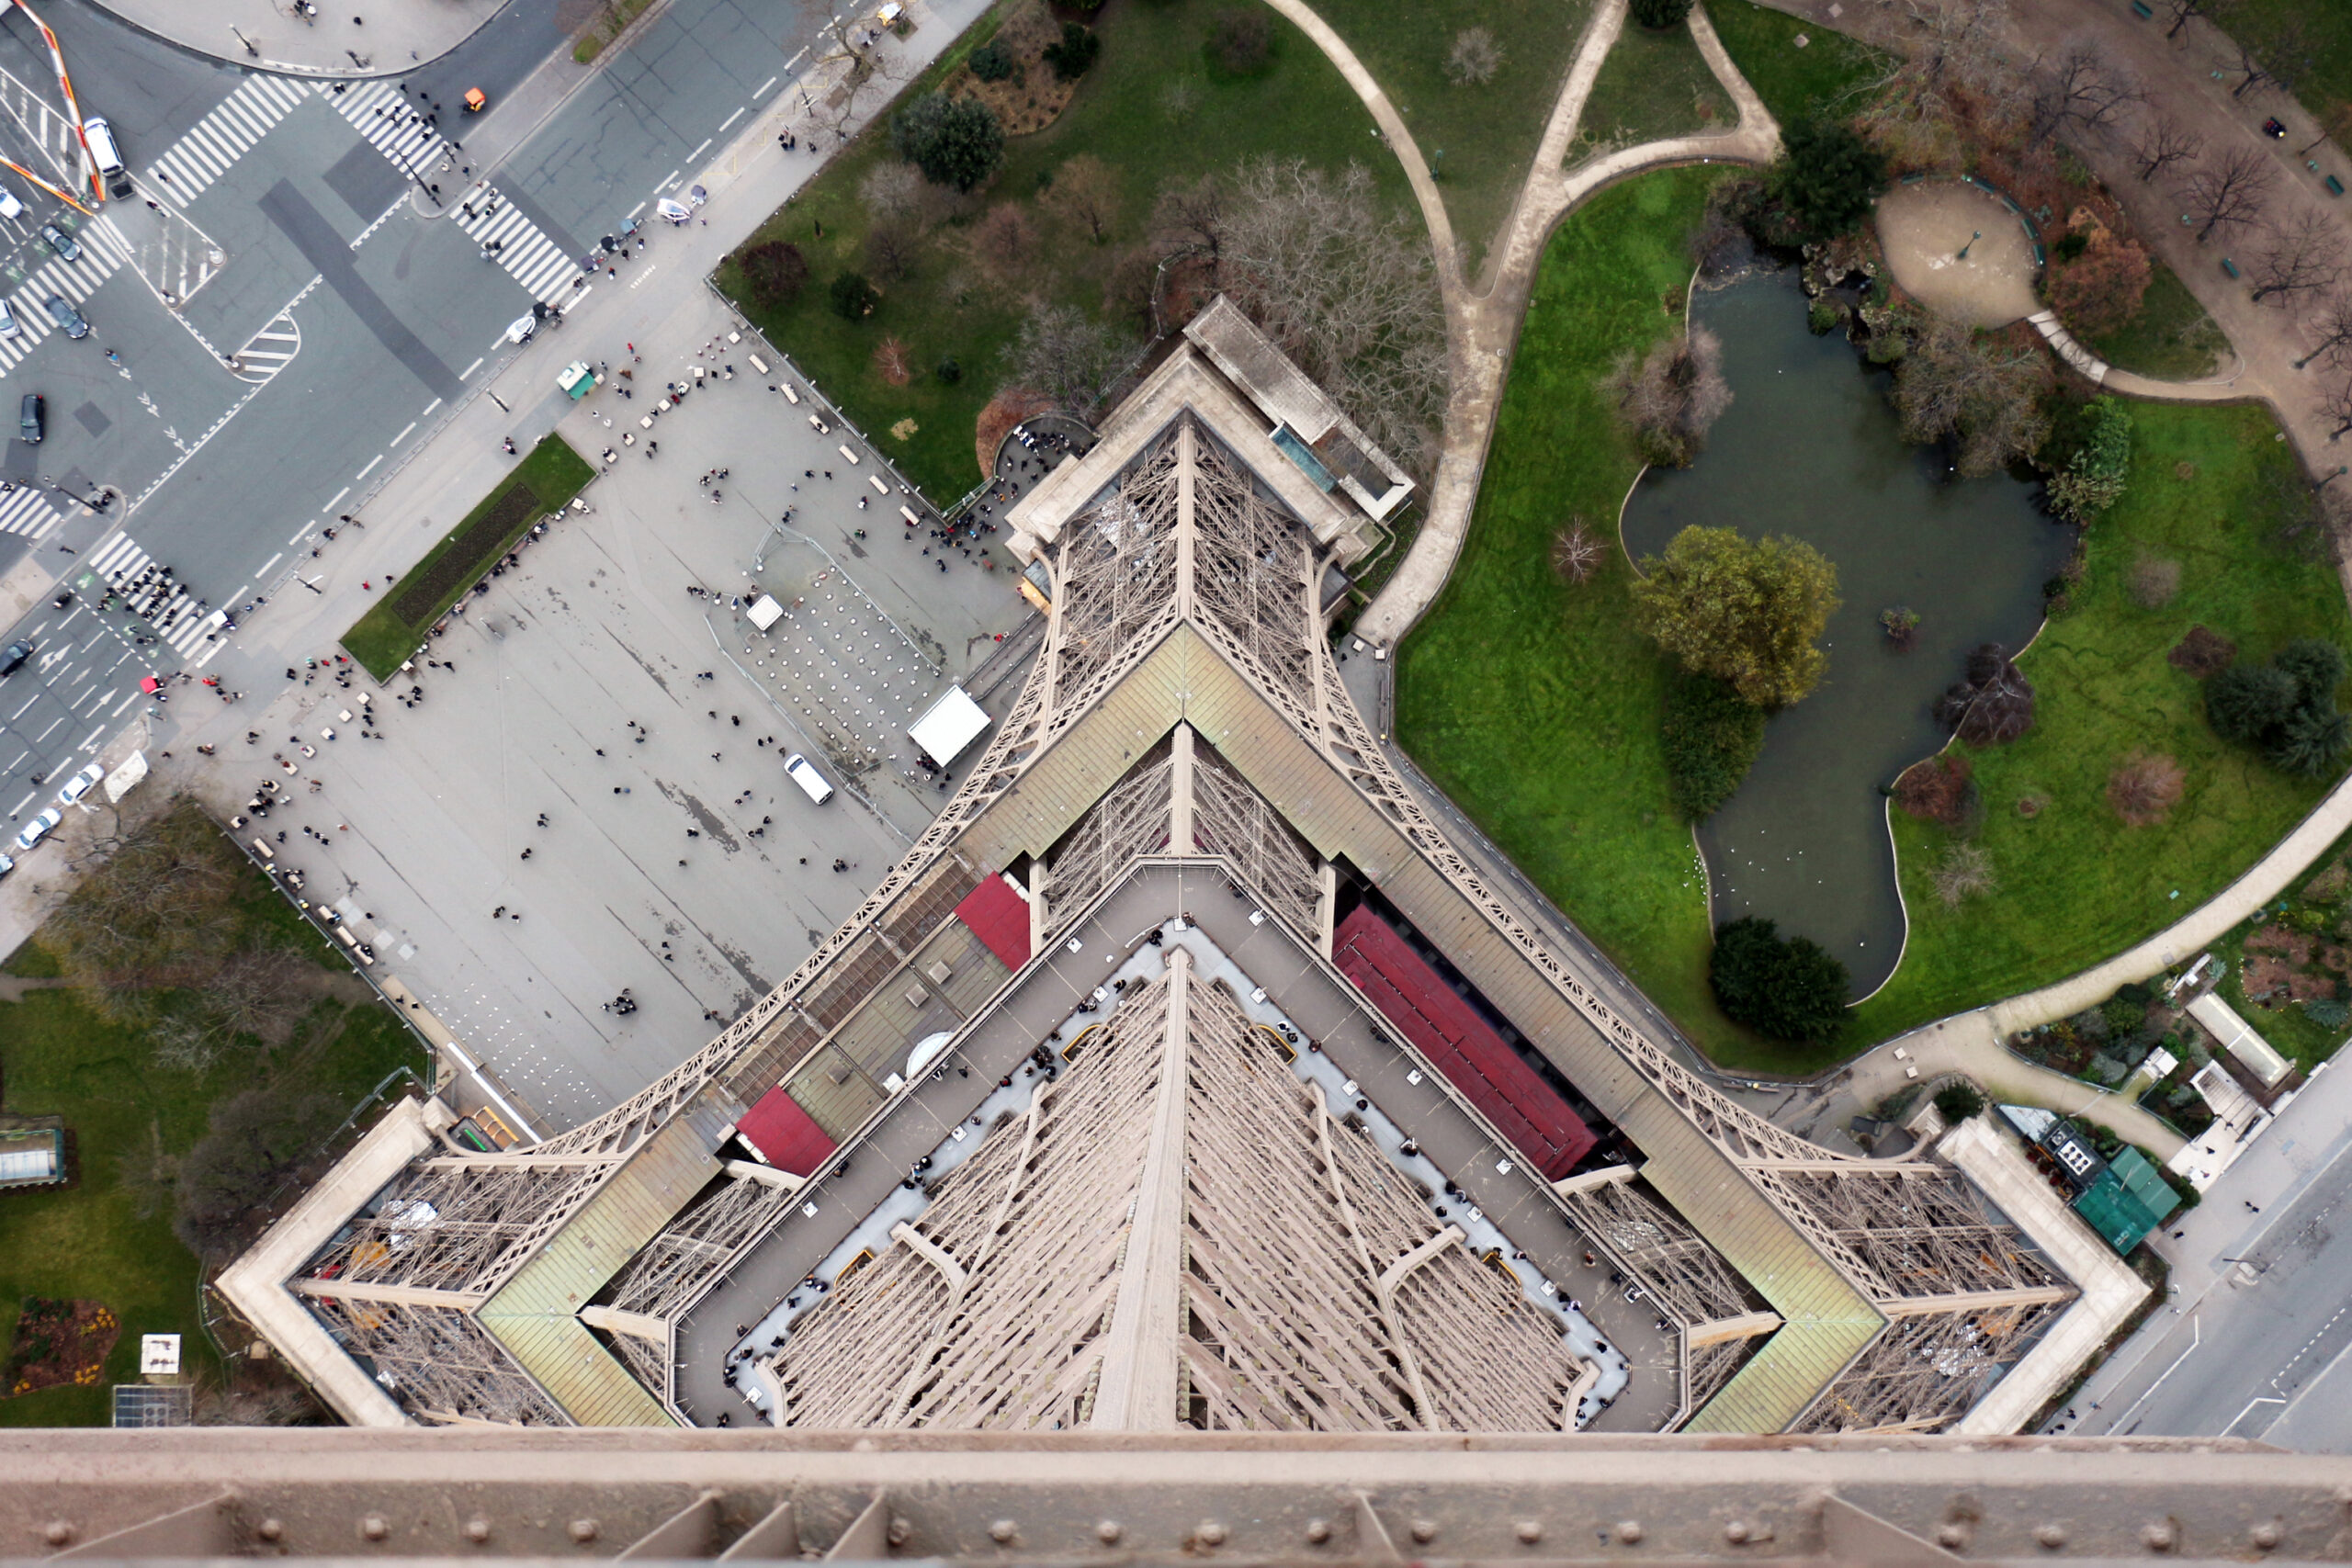 Vertical view from the top of the Eiffel tower in Paris, with perspective of the height of the tower and people in the park very far away below.